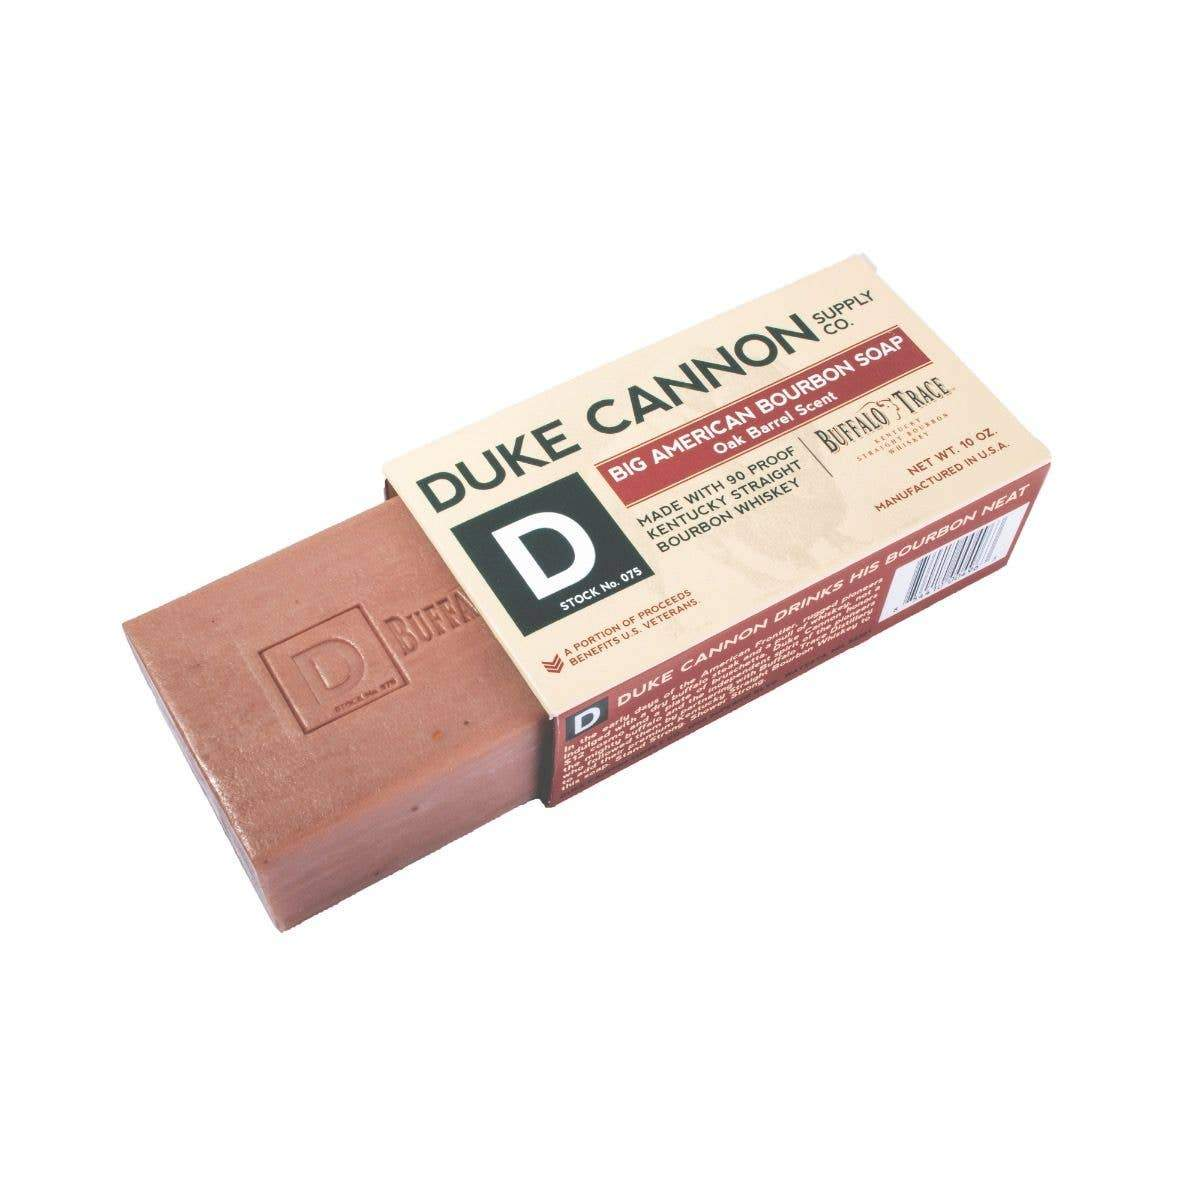 manly bourbon soap Duke Cannon